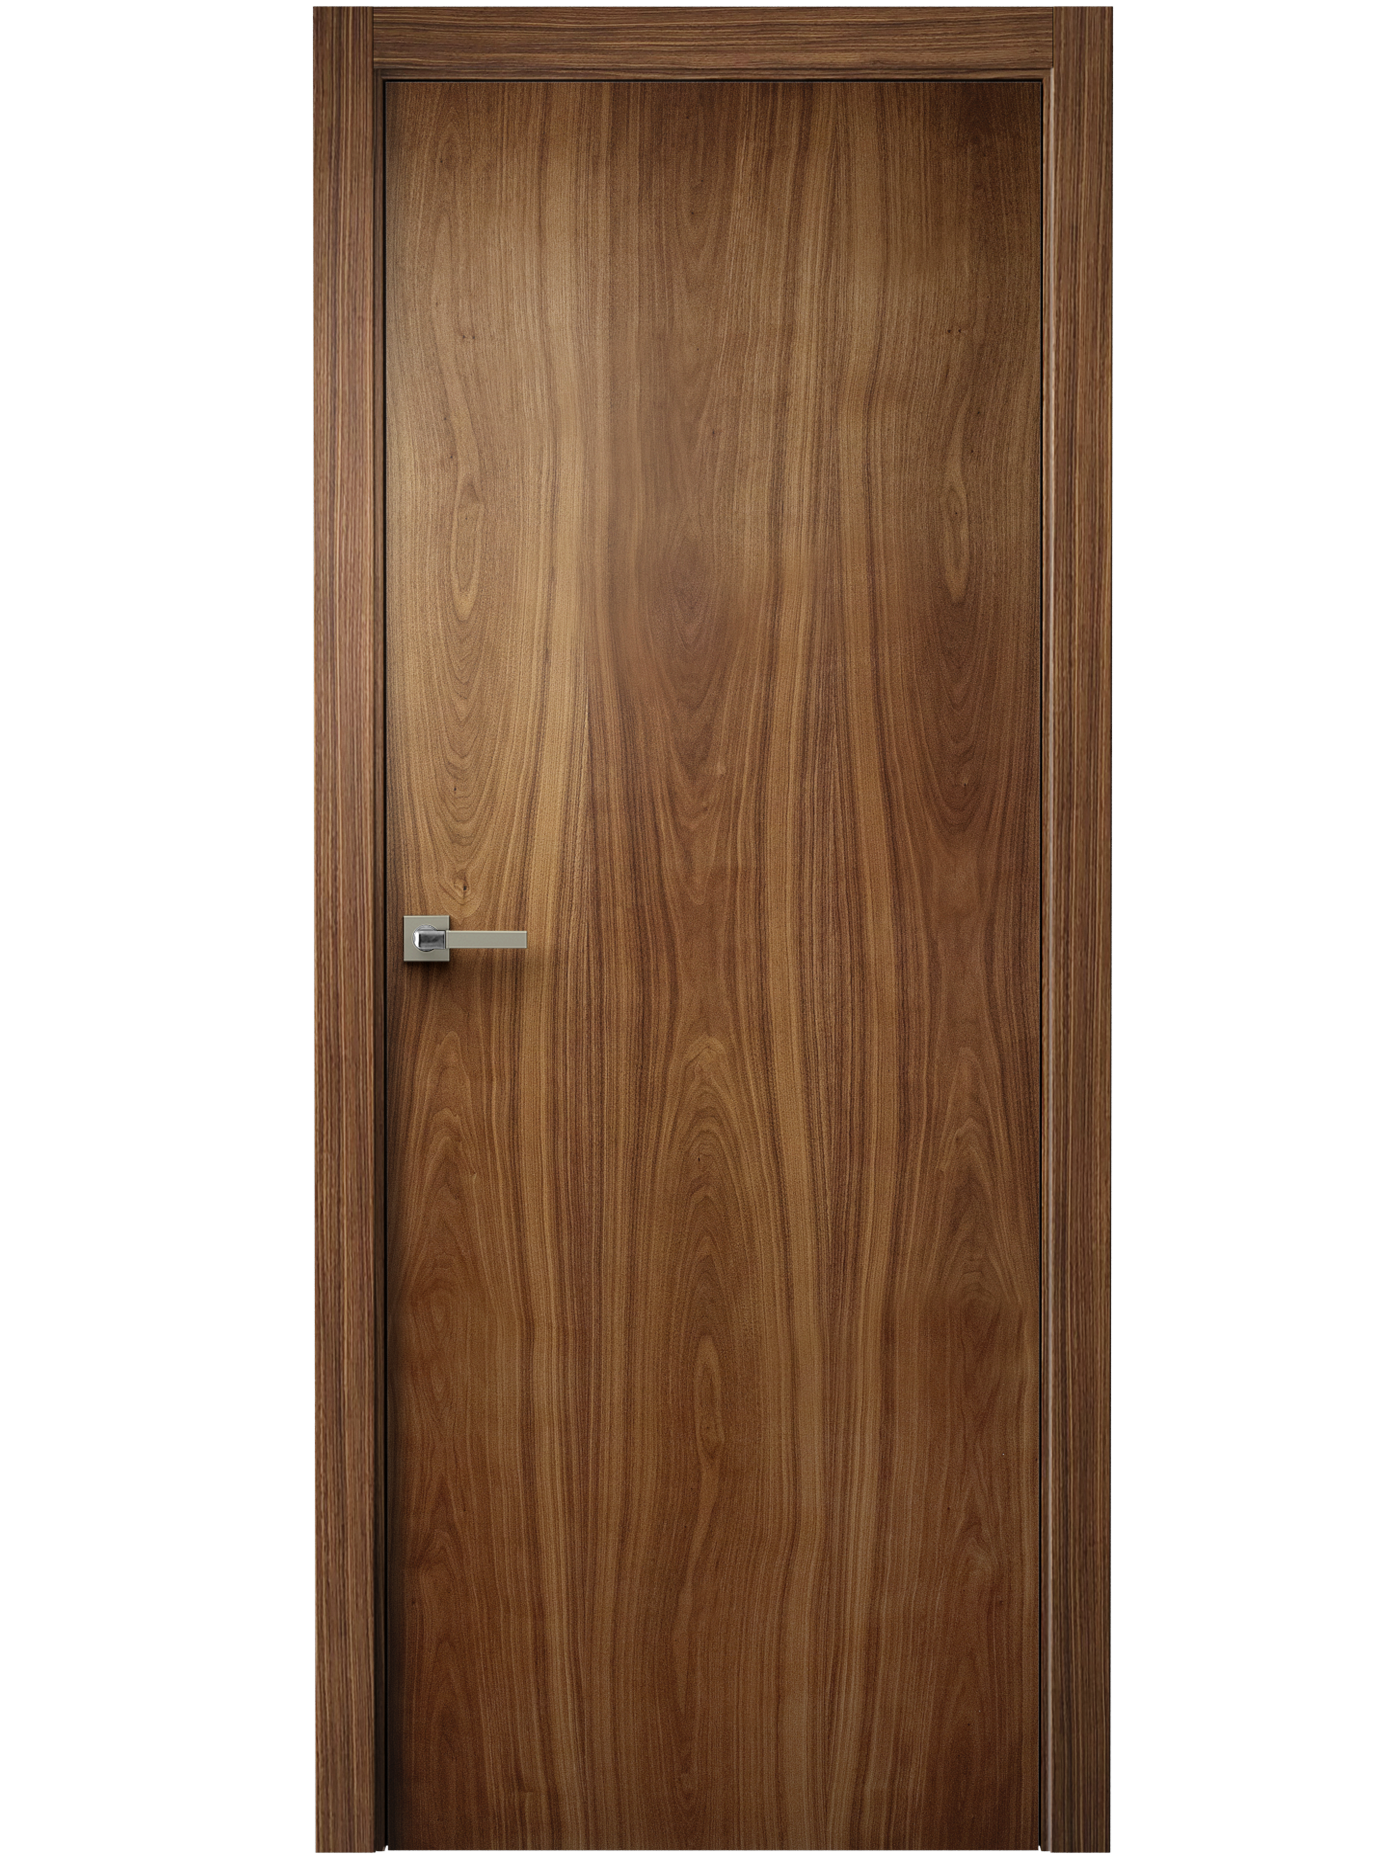 Image Unica Interior Door American Walnut 0